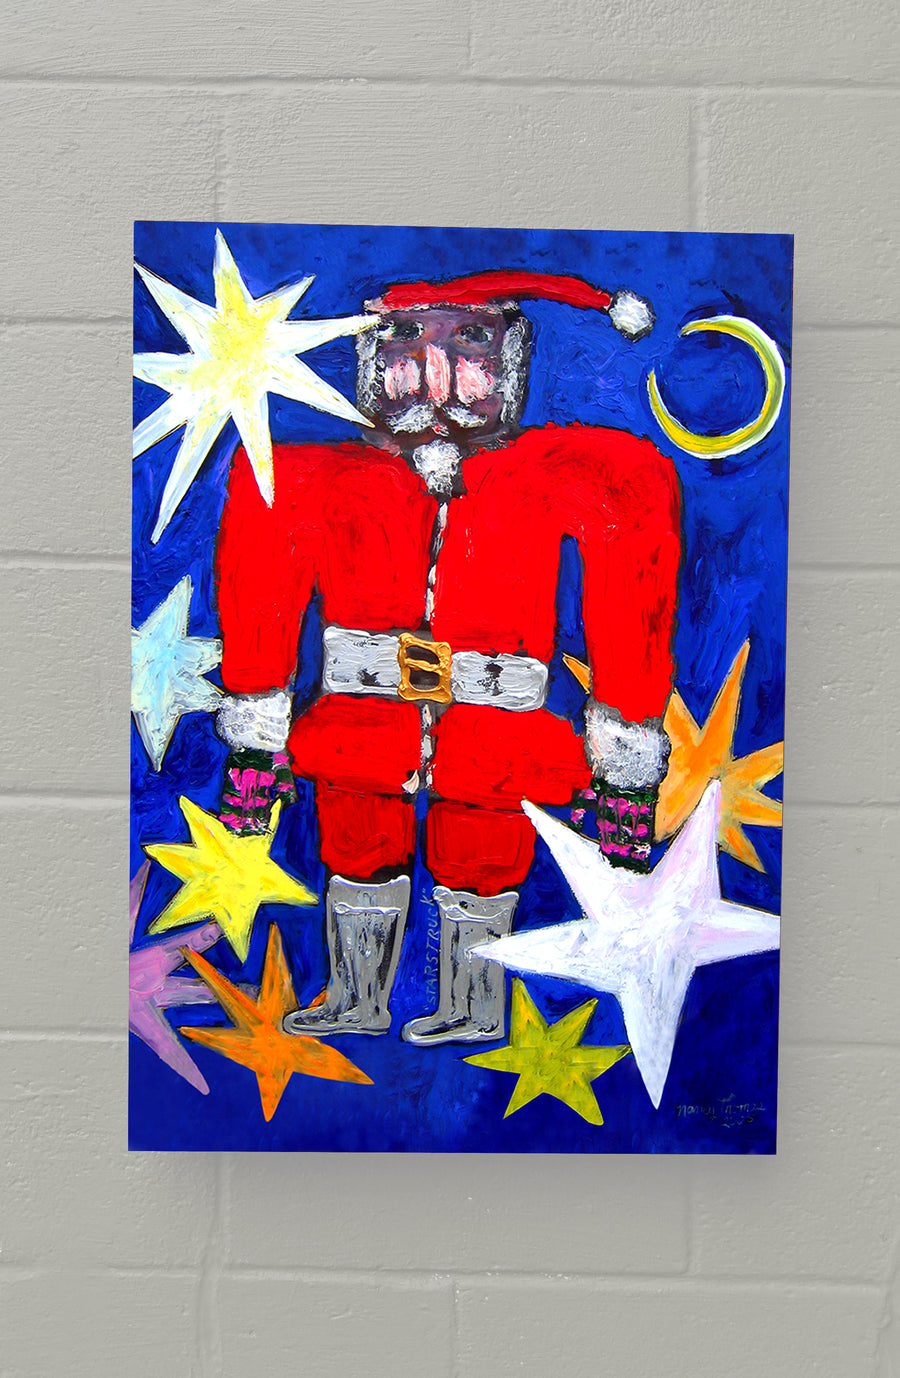 GALLERY GRAND - Star Struck Santa!